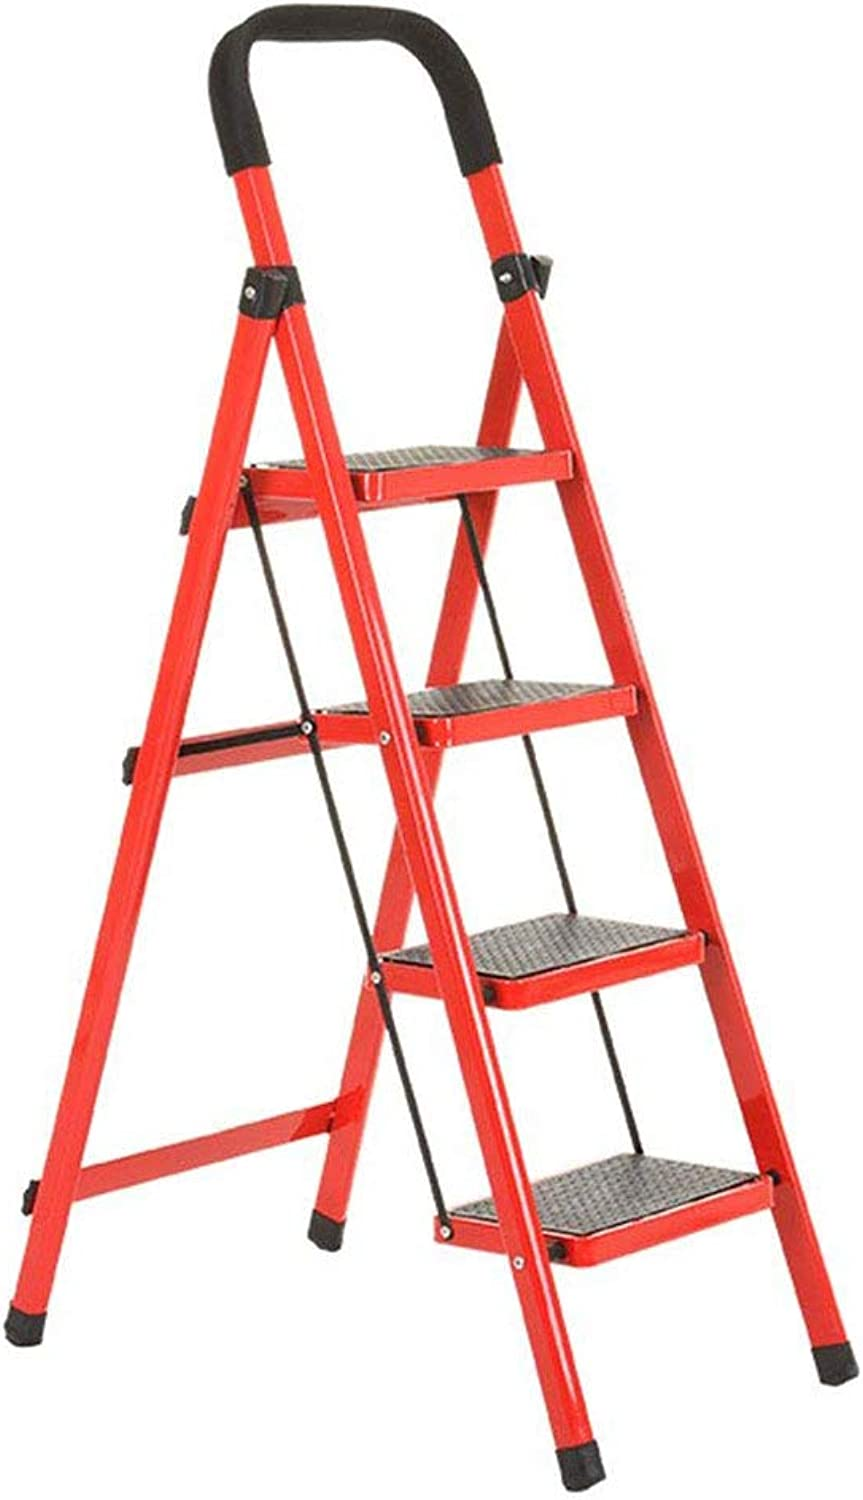 SHELFDQ 4-tier Non-slip 4 Step Ladder Household Chair Dual Use Indoor Four Steps Pedals Herringbone Folding Ladder Multifunction (color   RED)